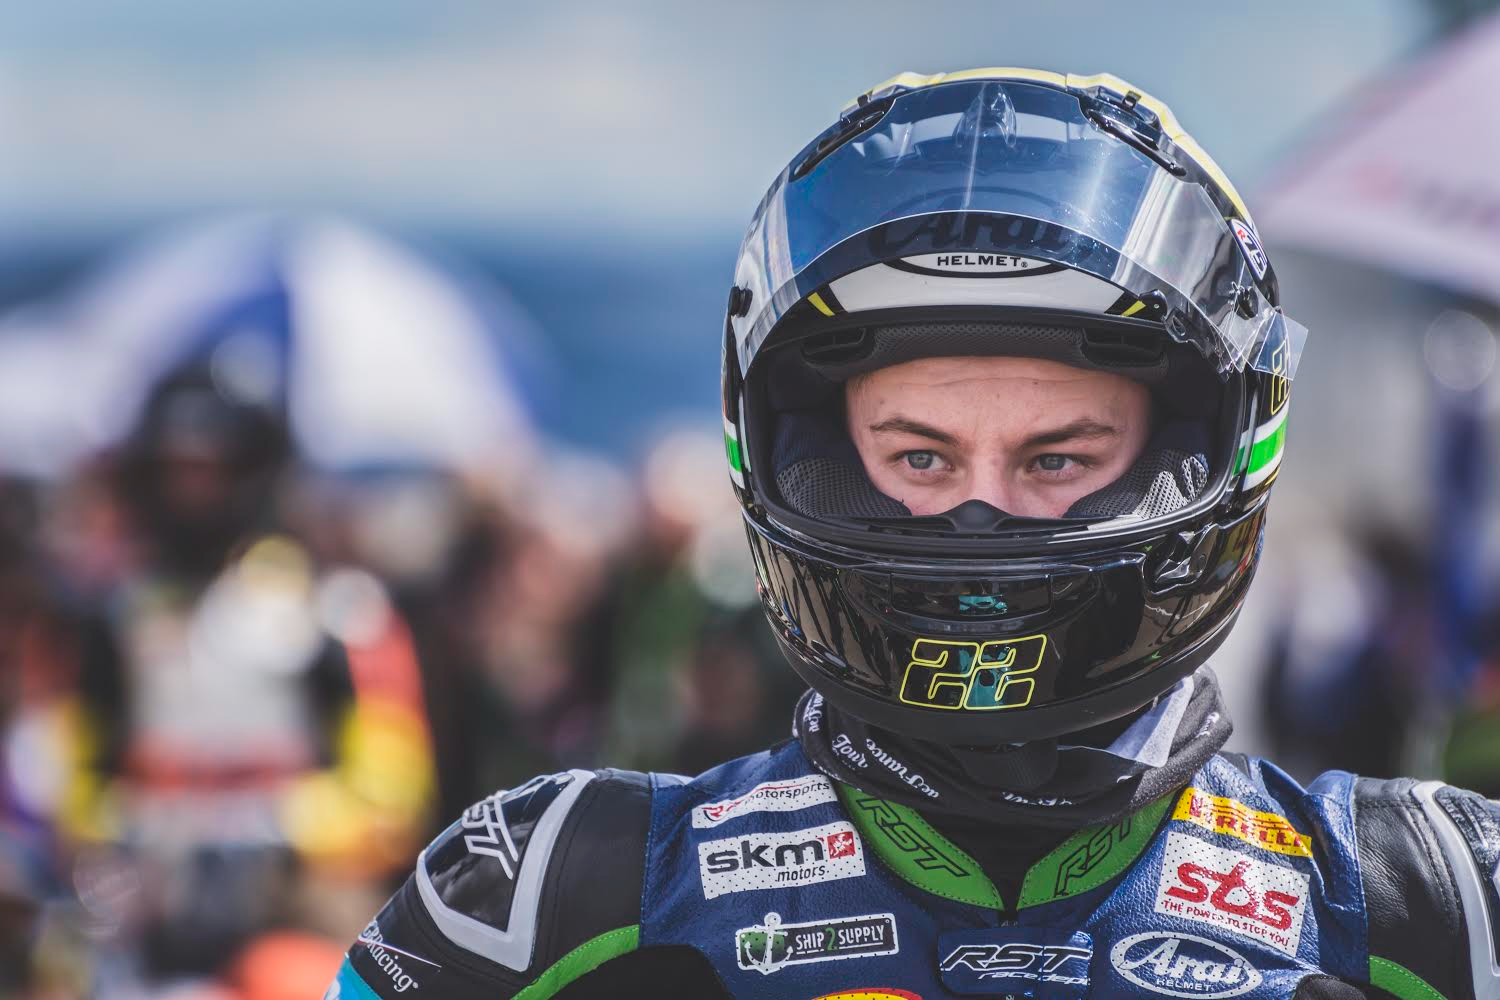 Nick Kalinin started fight for world championship title 2019 in Aragon